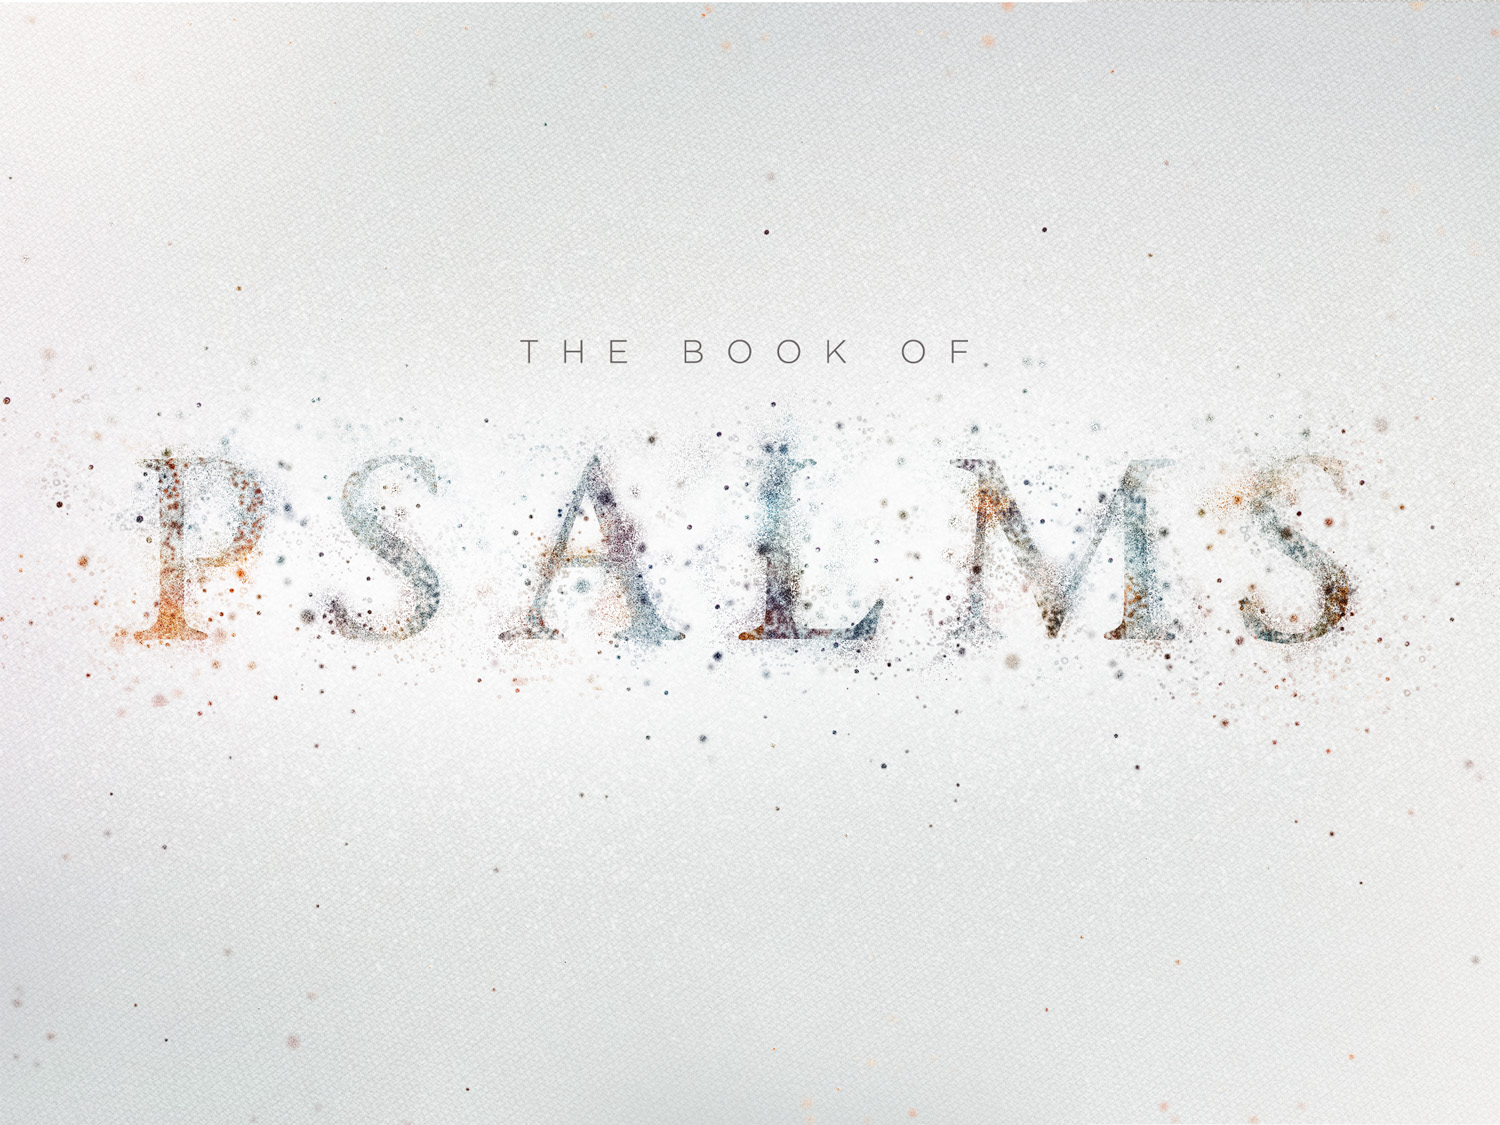 the_book_of_psalms-title-1-Standard 4x3